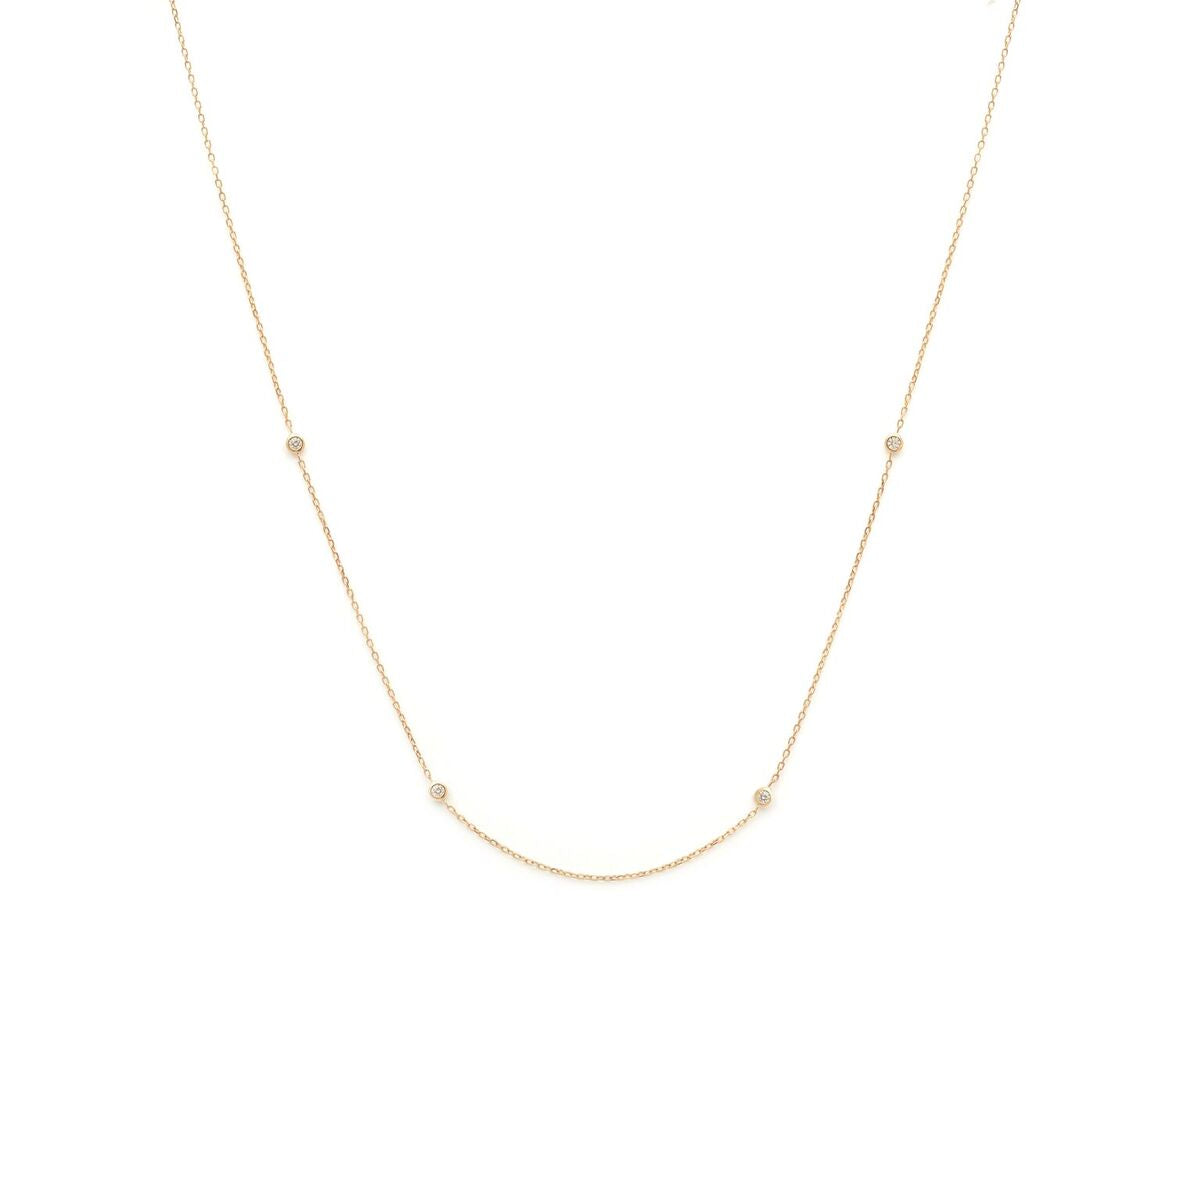 Delicate Diamond Strand Necklace - 14k Solid Gold